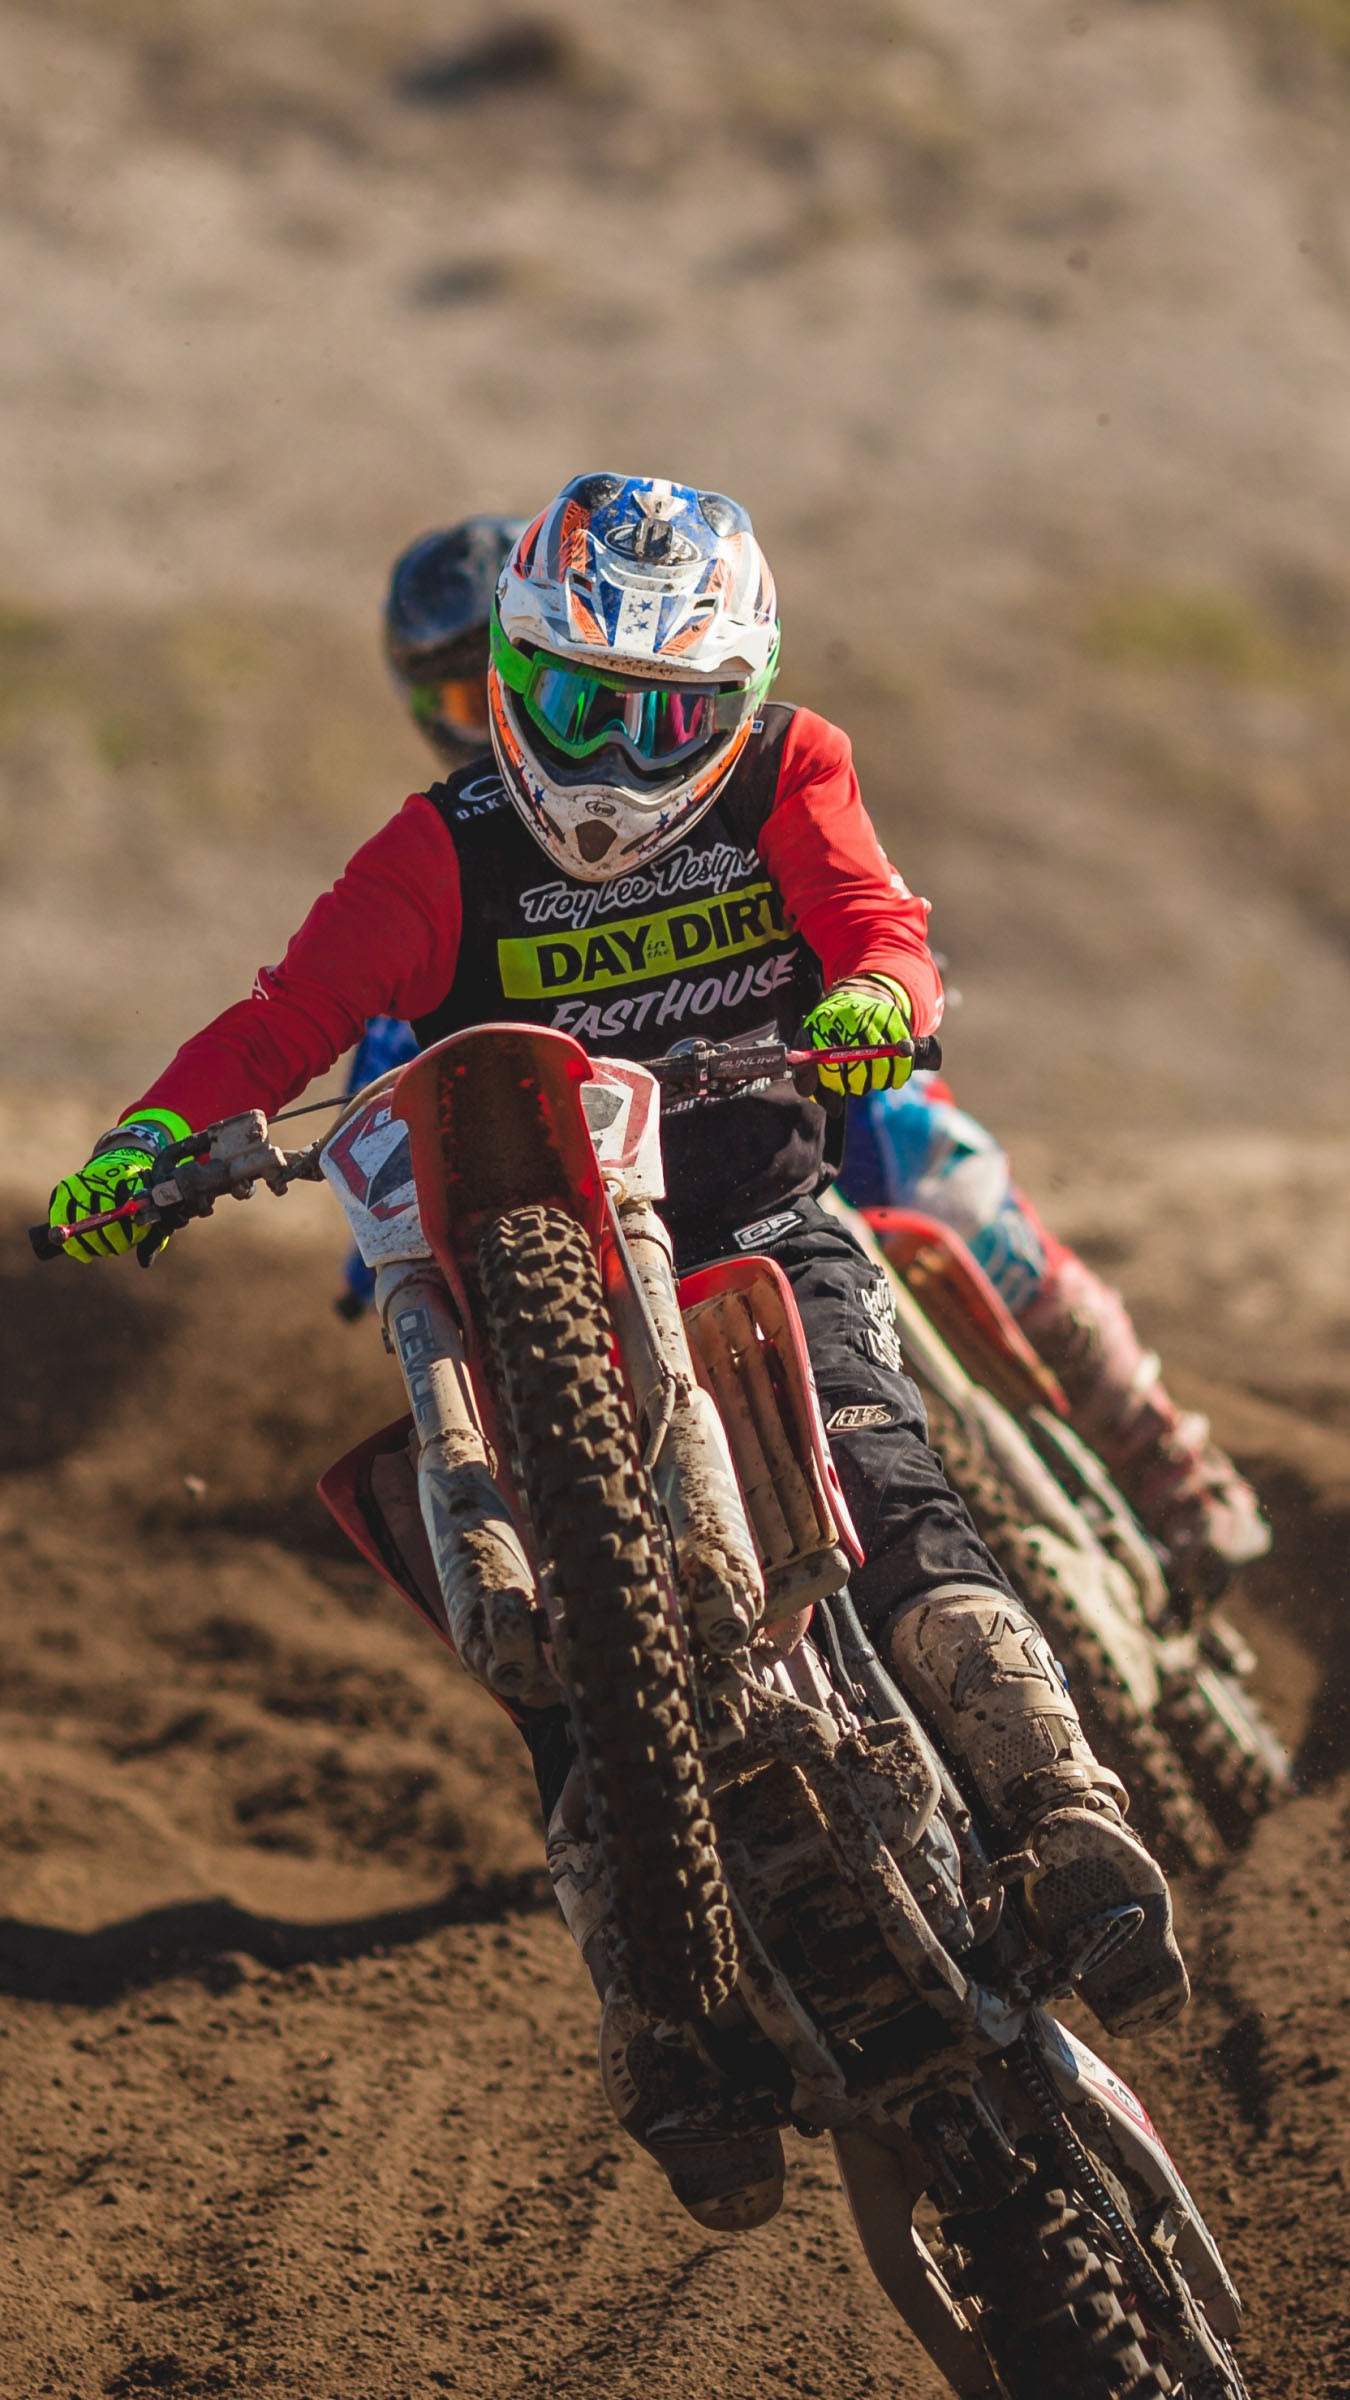 Motocross sand Wallpaper for iPhone X, 8, 7, 6 - Free ...